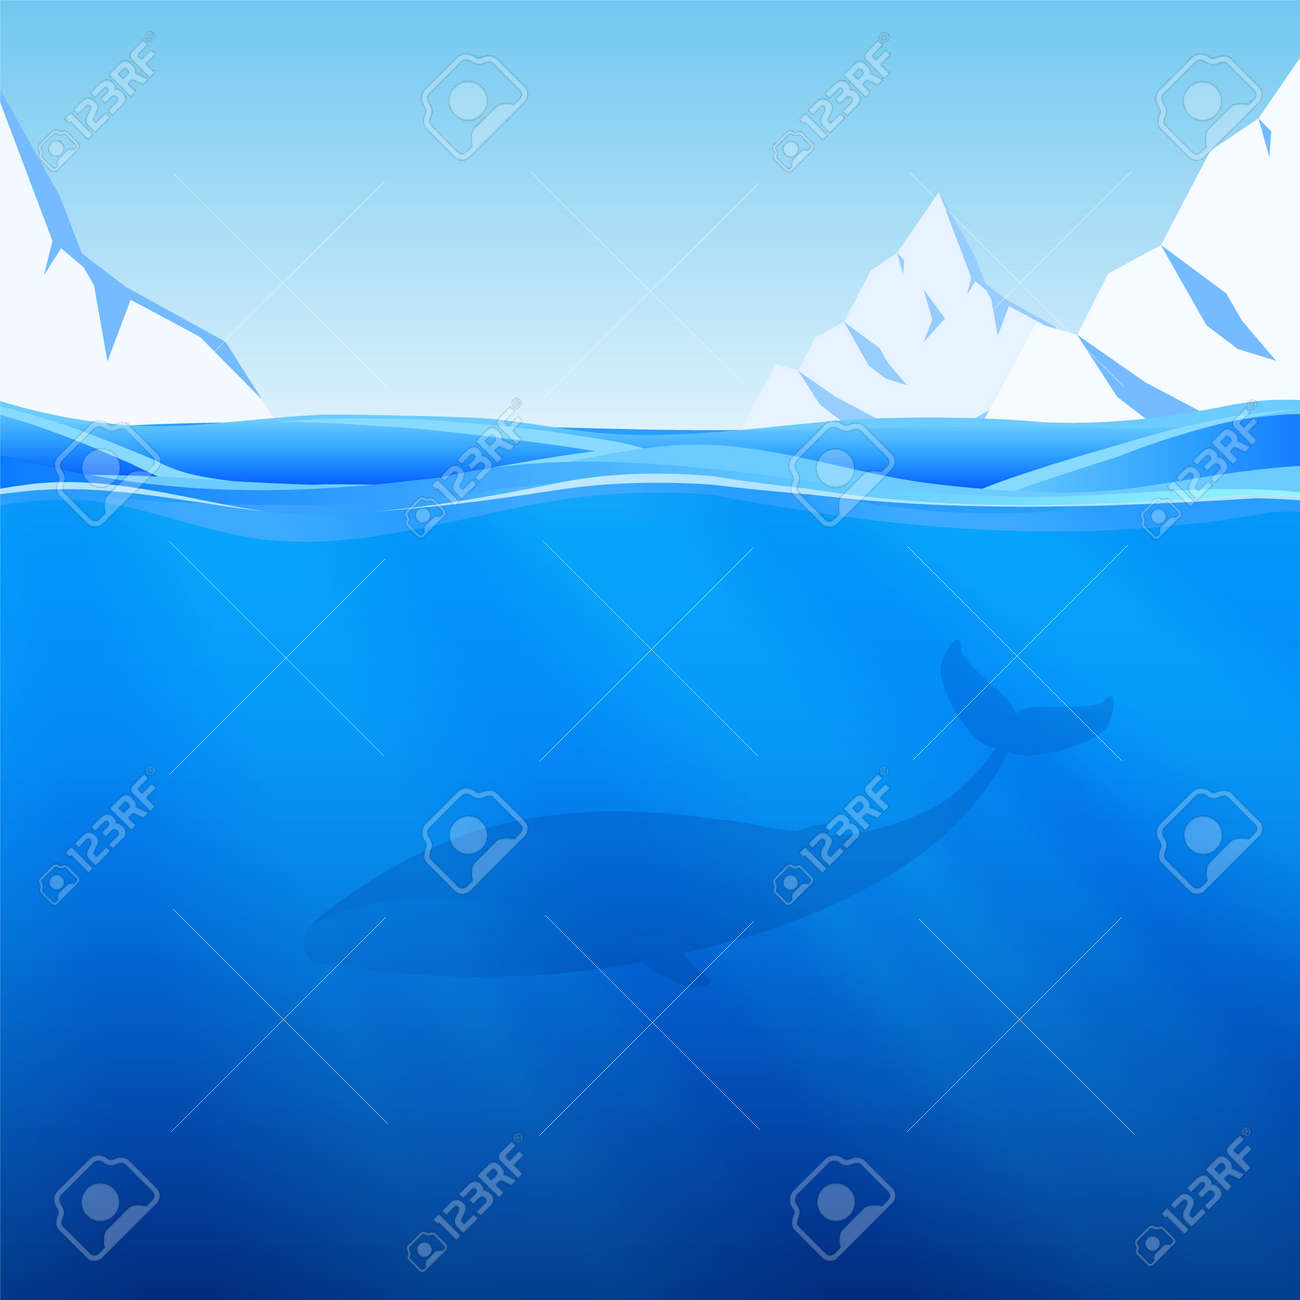 Vector illustration: Water Background with northern sea, icebergs and whale. - 154956251